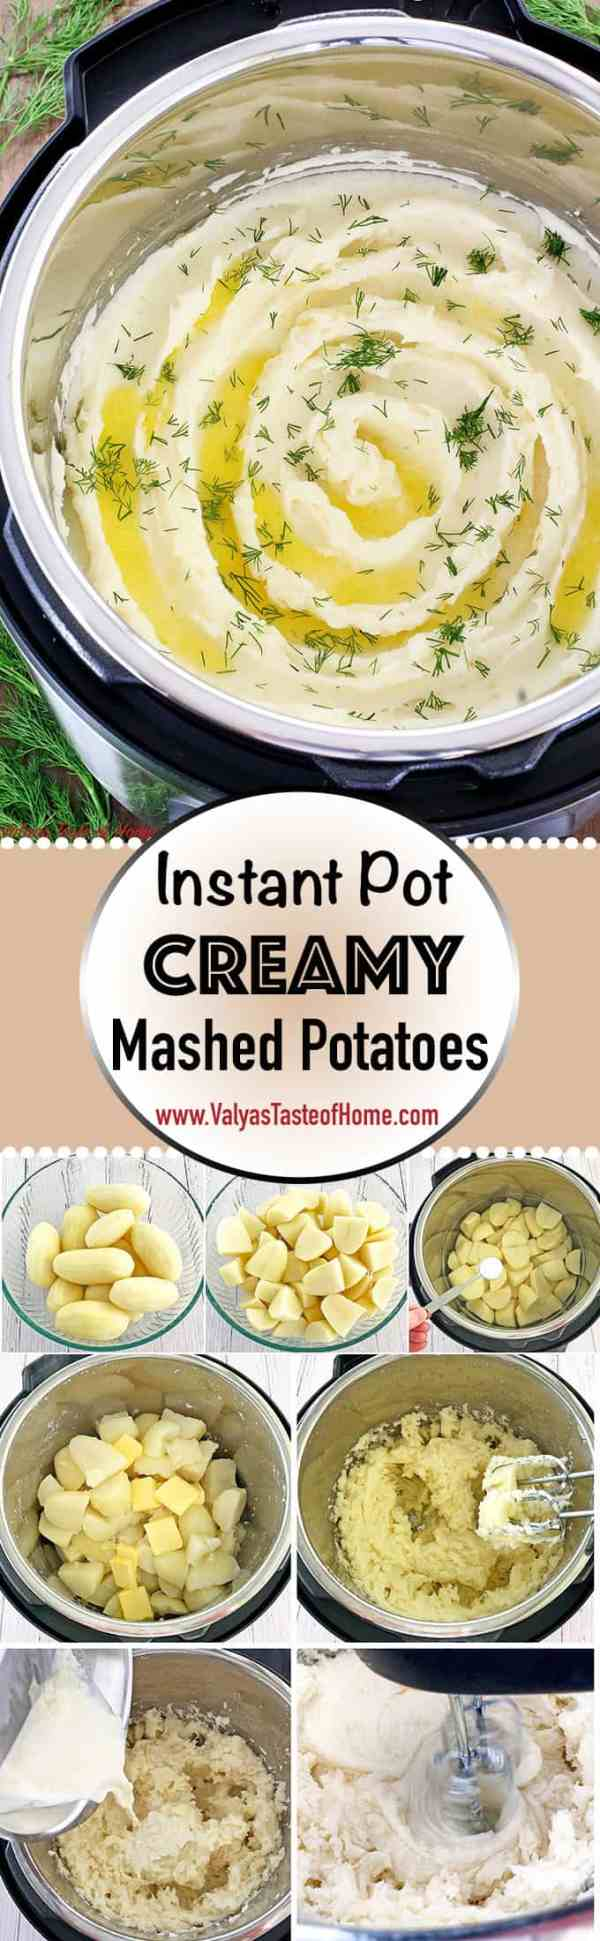 Is there anything more comforting food than mashed potatoes? It never gets old at our house. I really wanted to post this quick, creamy, and delicious Instant Pot version of it before Thanksgiving to save you time in the upcoming holiday cooking! You know what is the most important thing I absolutely love about making mashed potatoes in the Instant Pot? Once you mash the potato with a hand mixer (or a potato masher) it can be kept in the pot on warm cycle for hours. The taste and texture are the same as it was just freshly mashed!